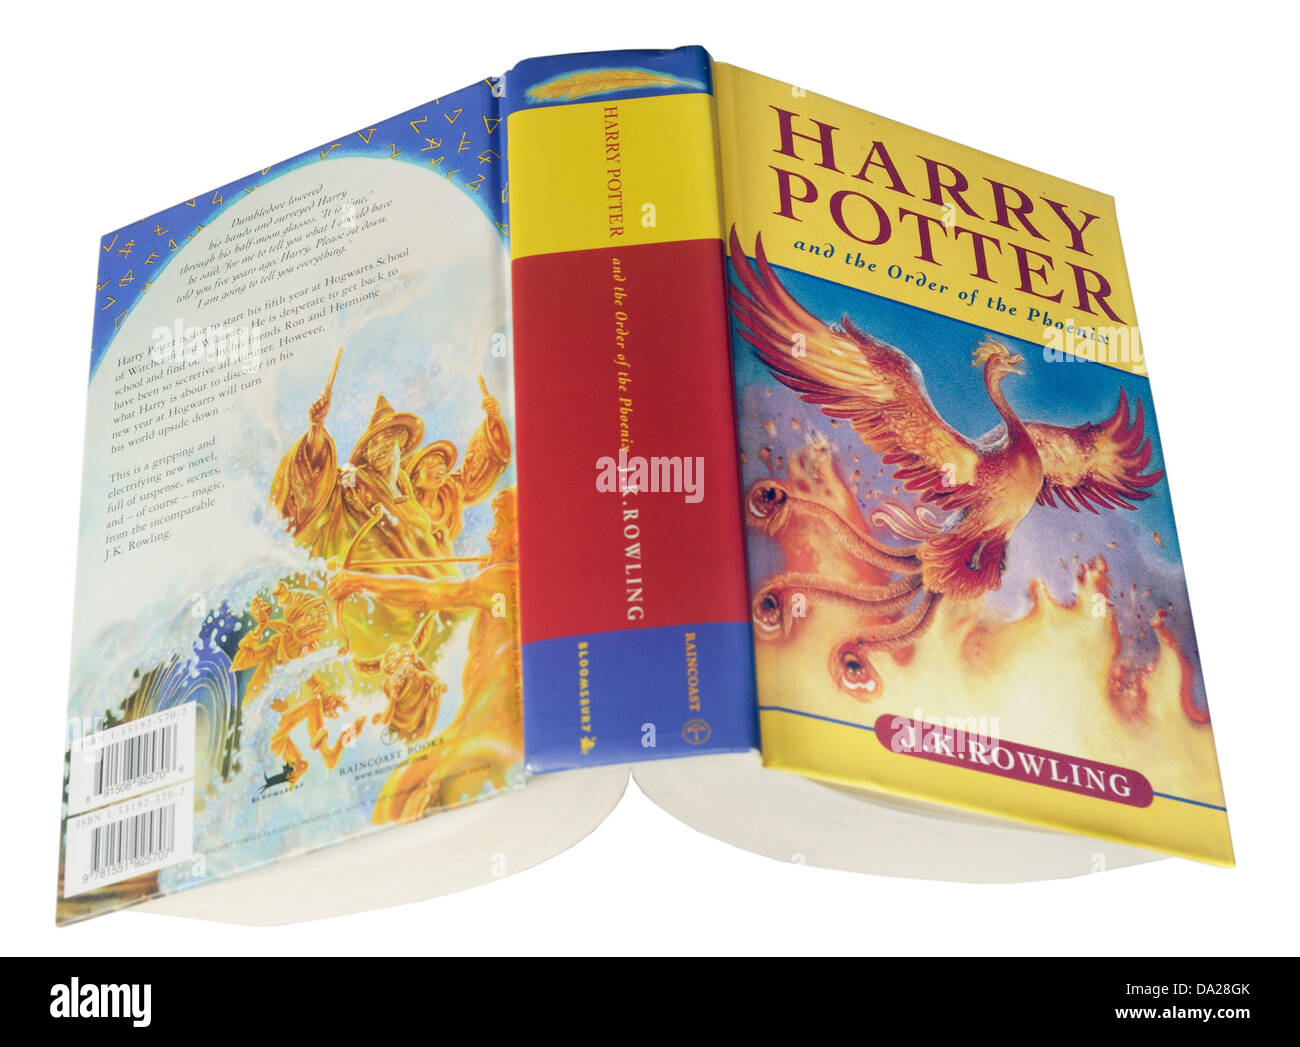 The 5th Harry Potter book Harry Potter and the Order of the Phoenix - Stock Image